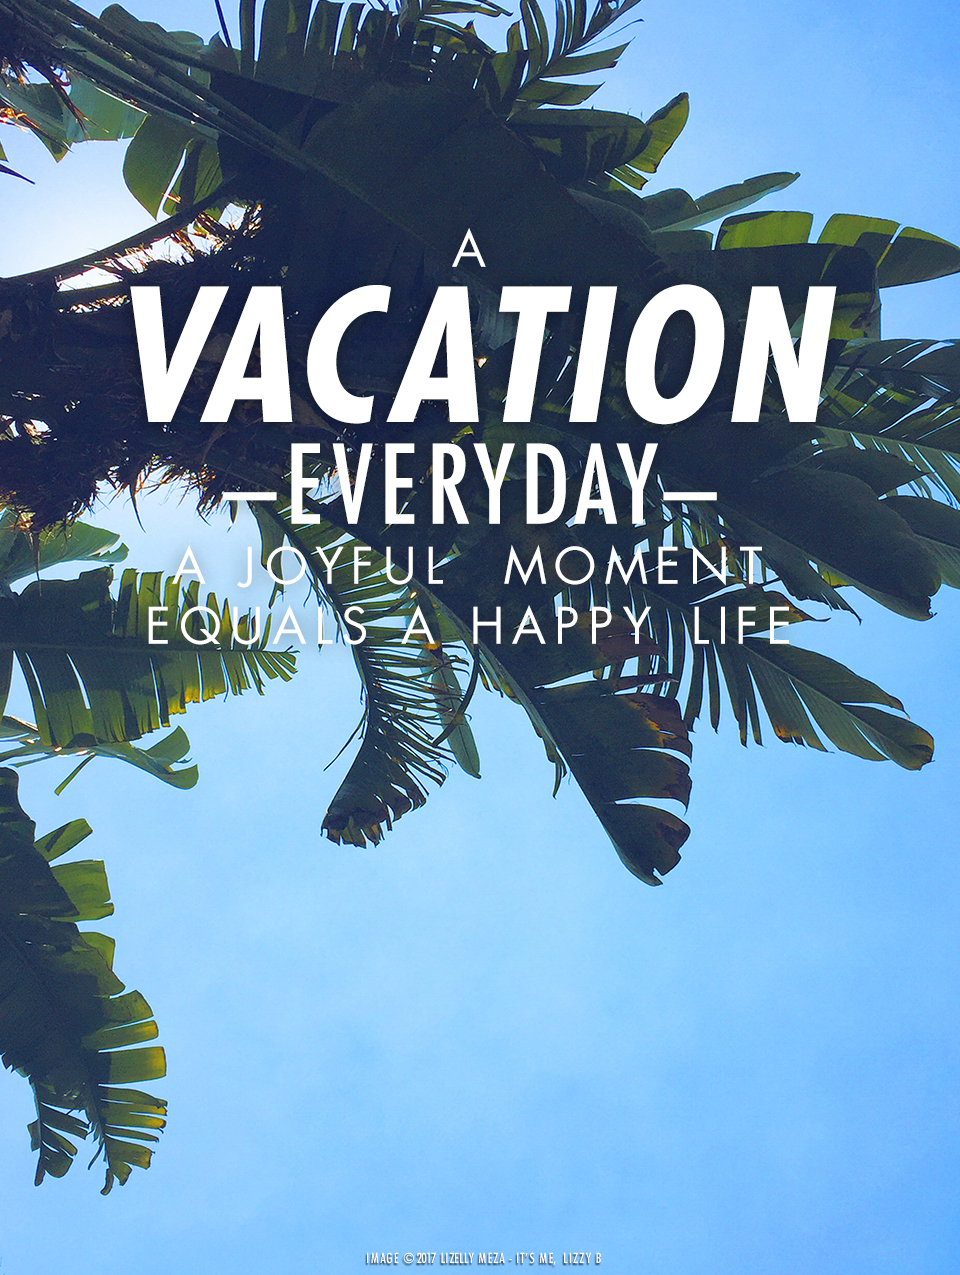 A Vacation Every Day—A Joyful Moment Equals A Happier Life// It's Me, Lizzy B - Musings on Life, Business, & The Pursuit of Curiosity // Personal blog of Lizelly Meza